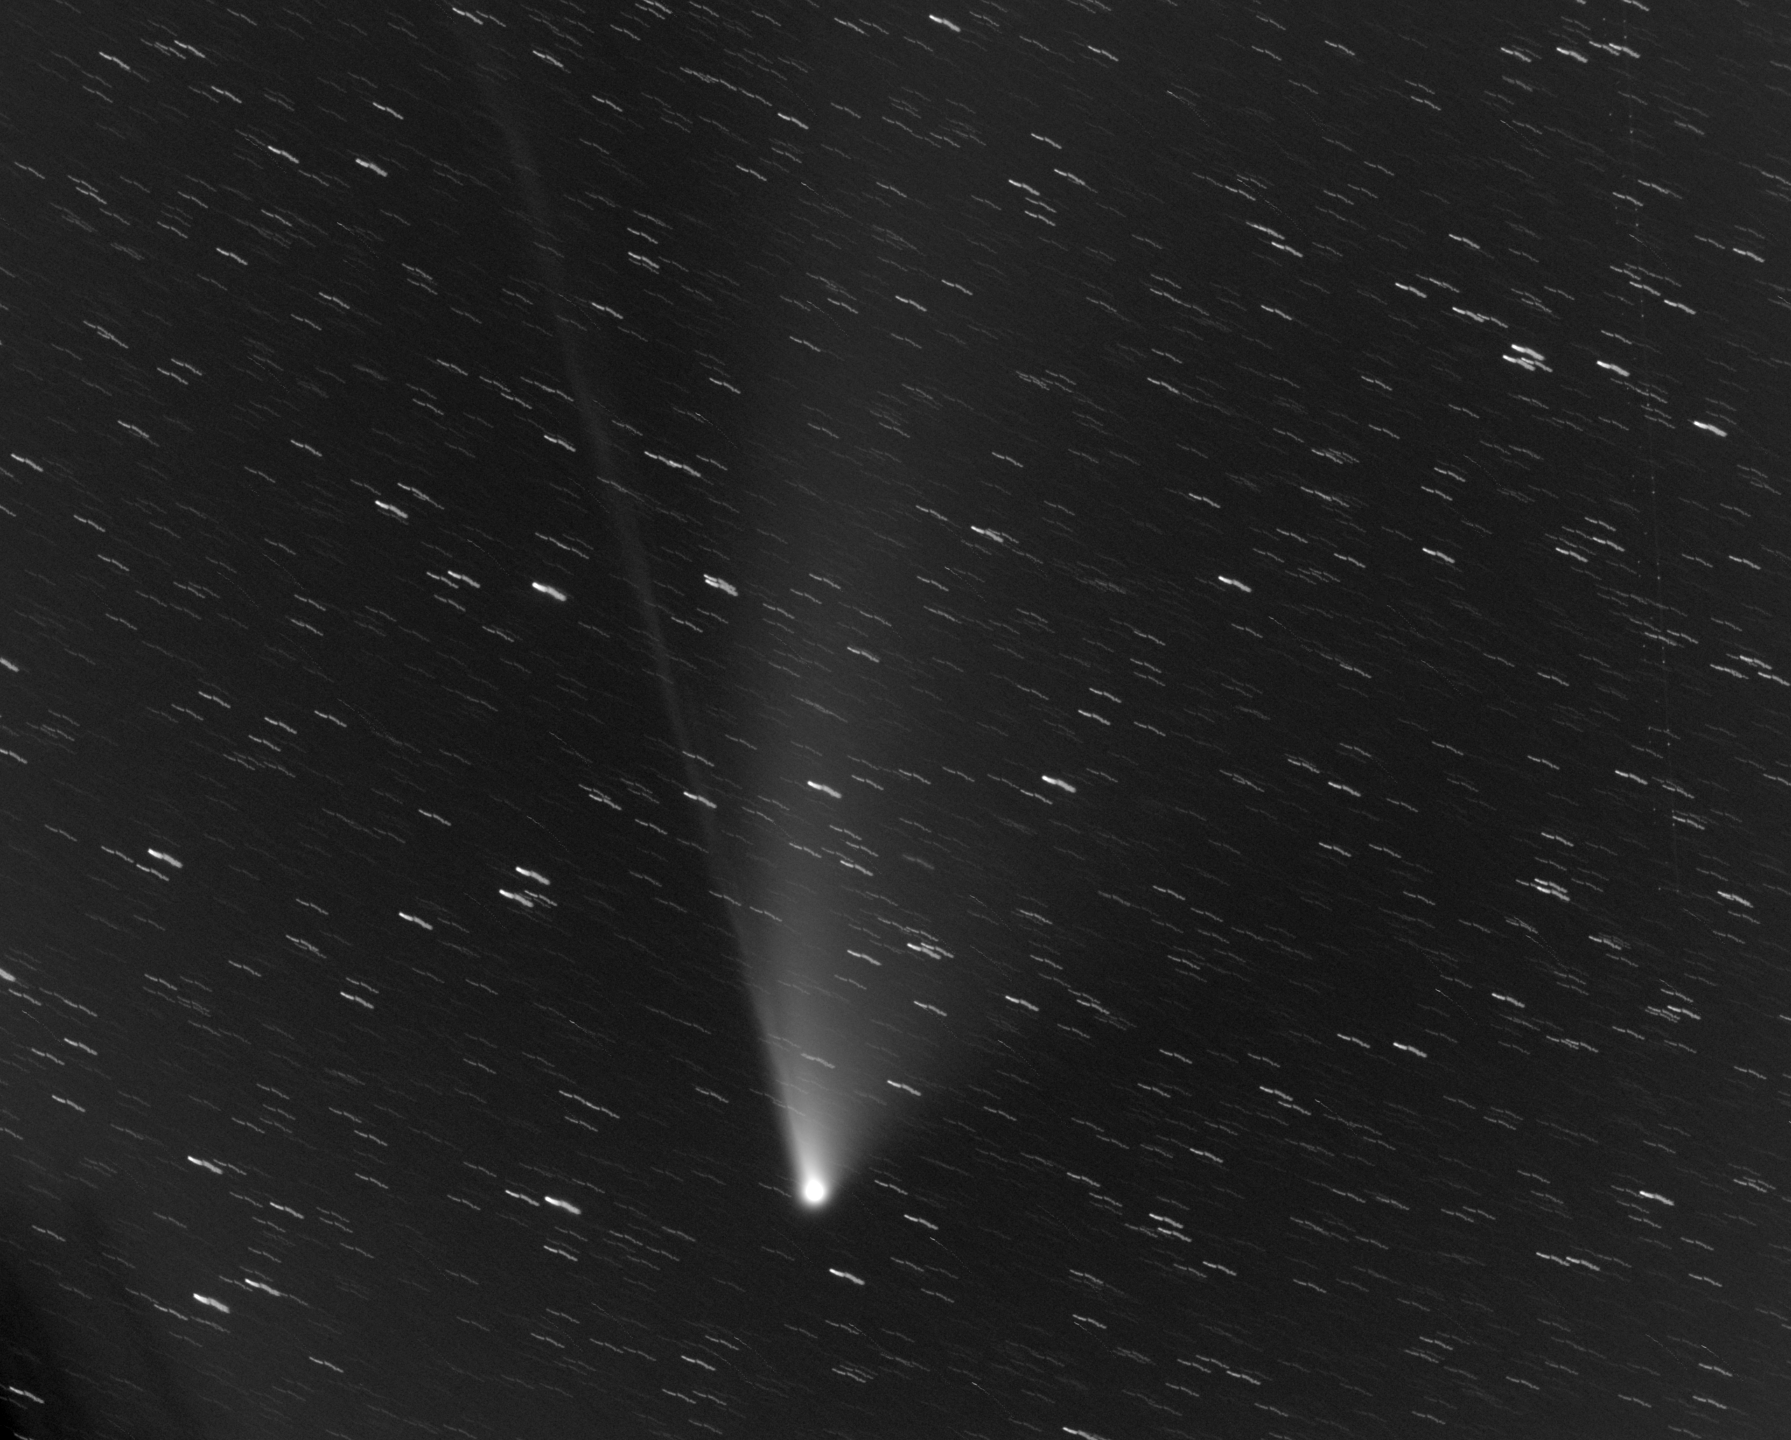 27juillet2020neowise85mm1.png